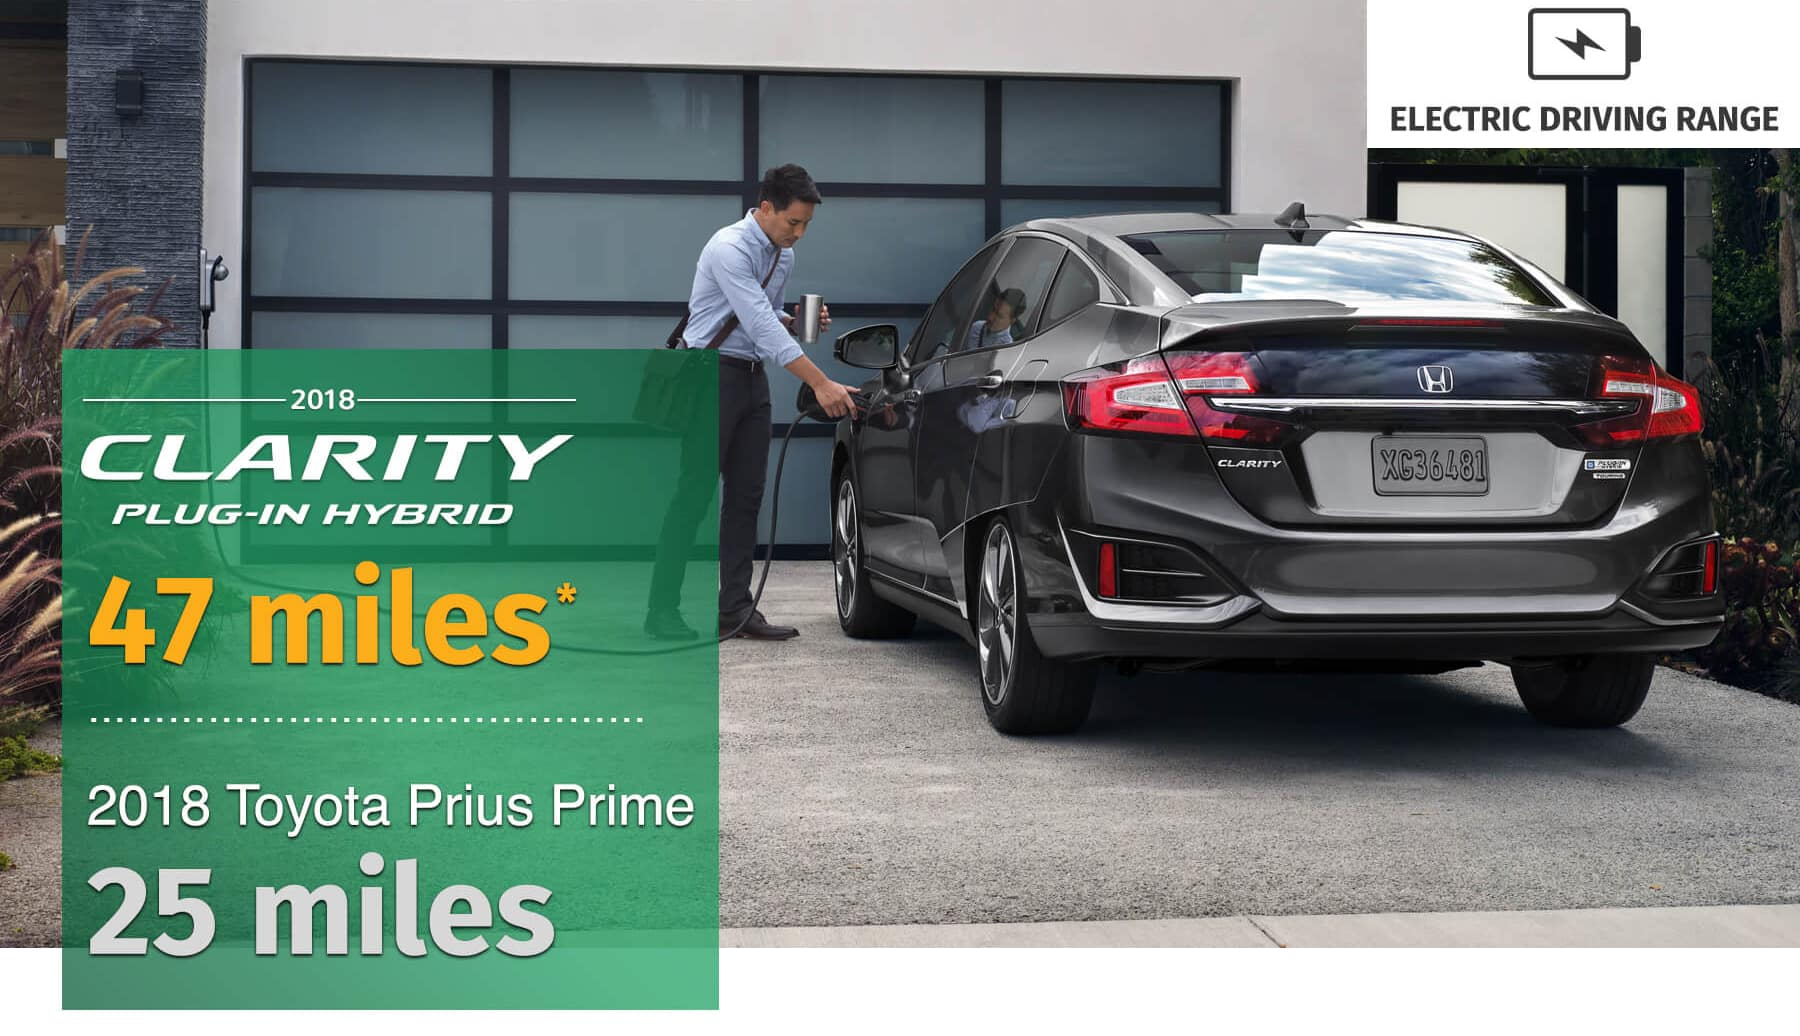 Honda Clarity vs. Toyota Prius: Electric Driving Range